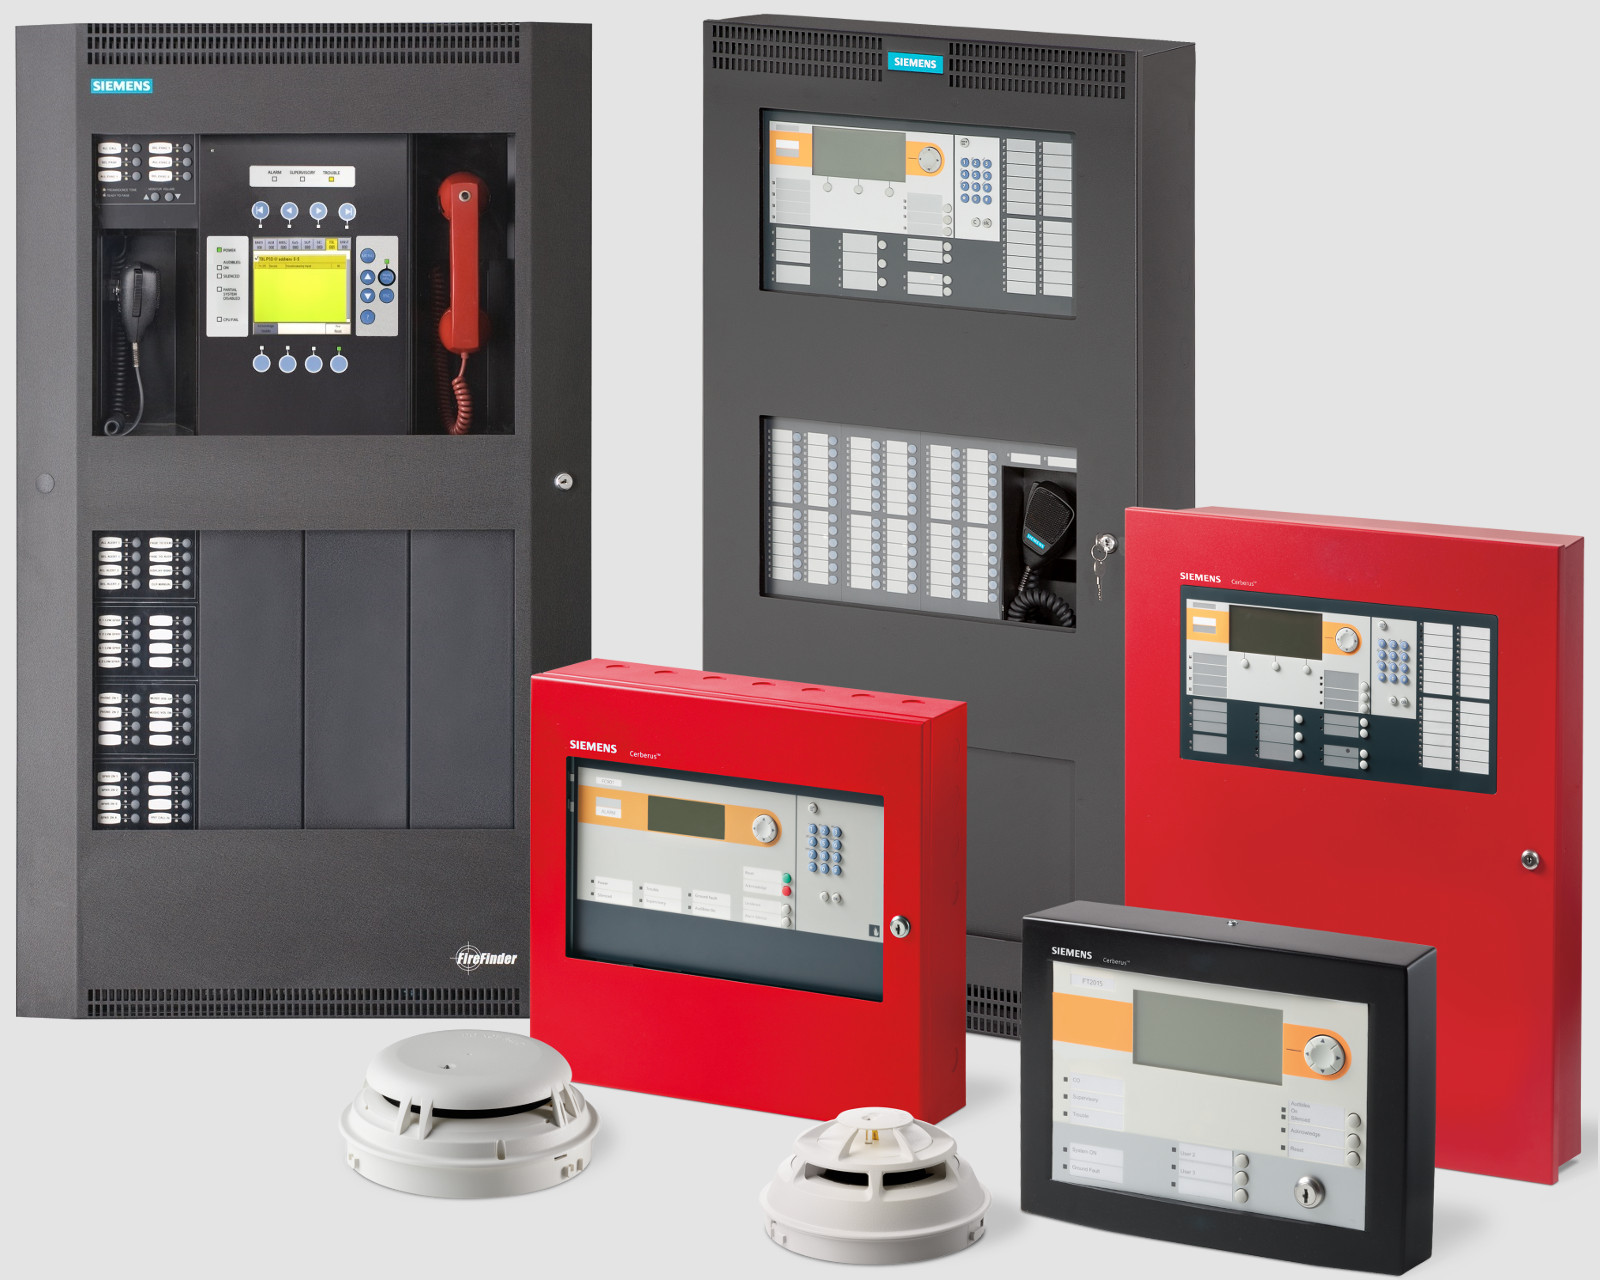 Siemens Fire Control Products